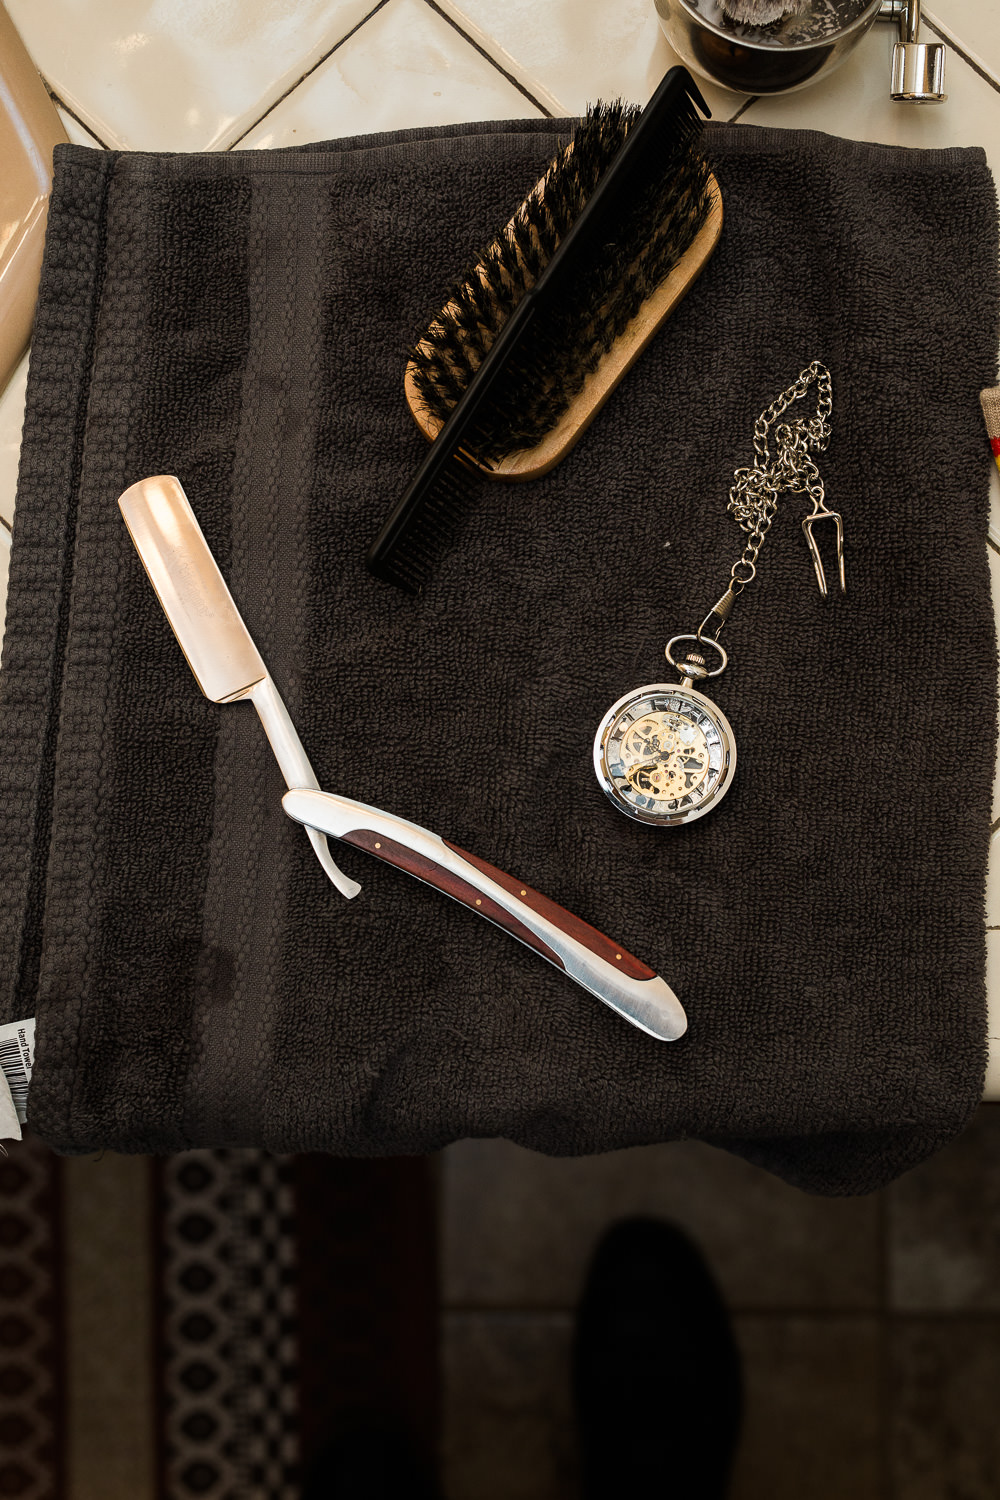 straight razor groom getting ready